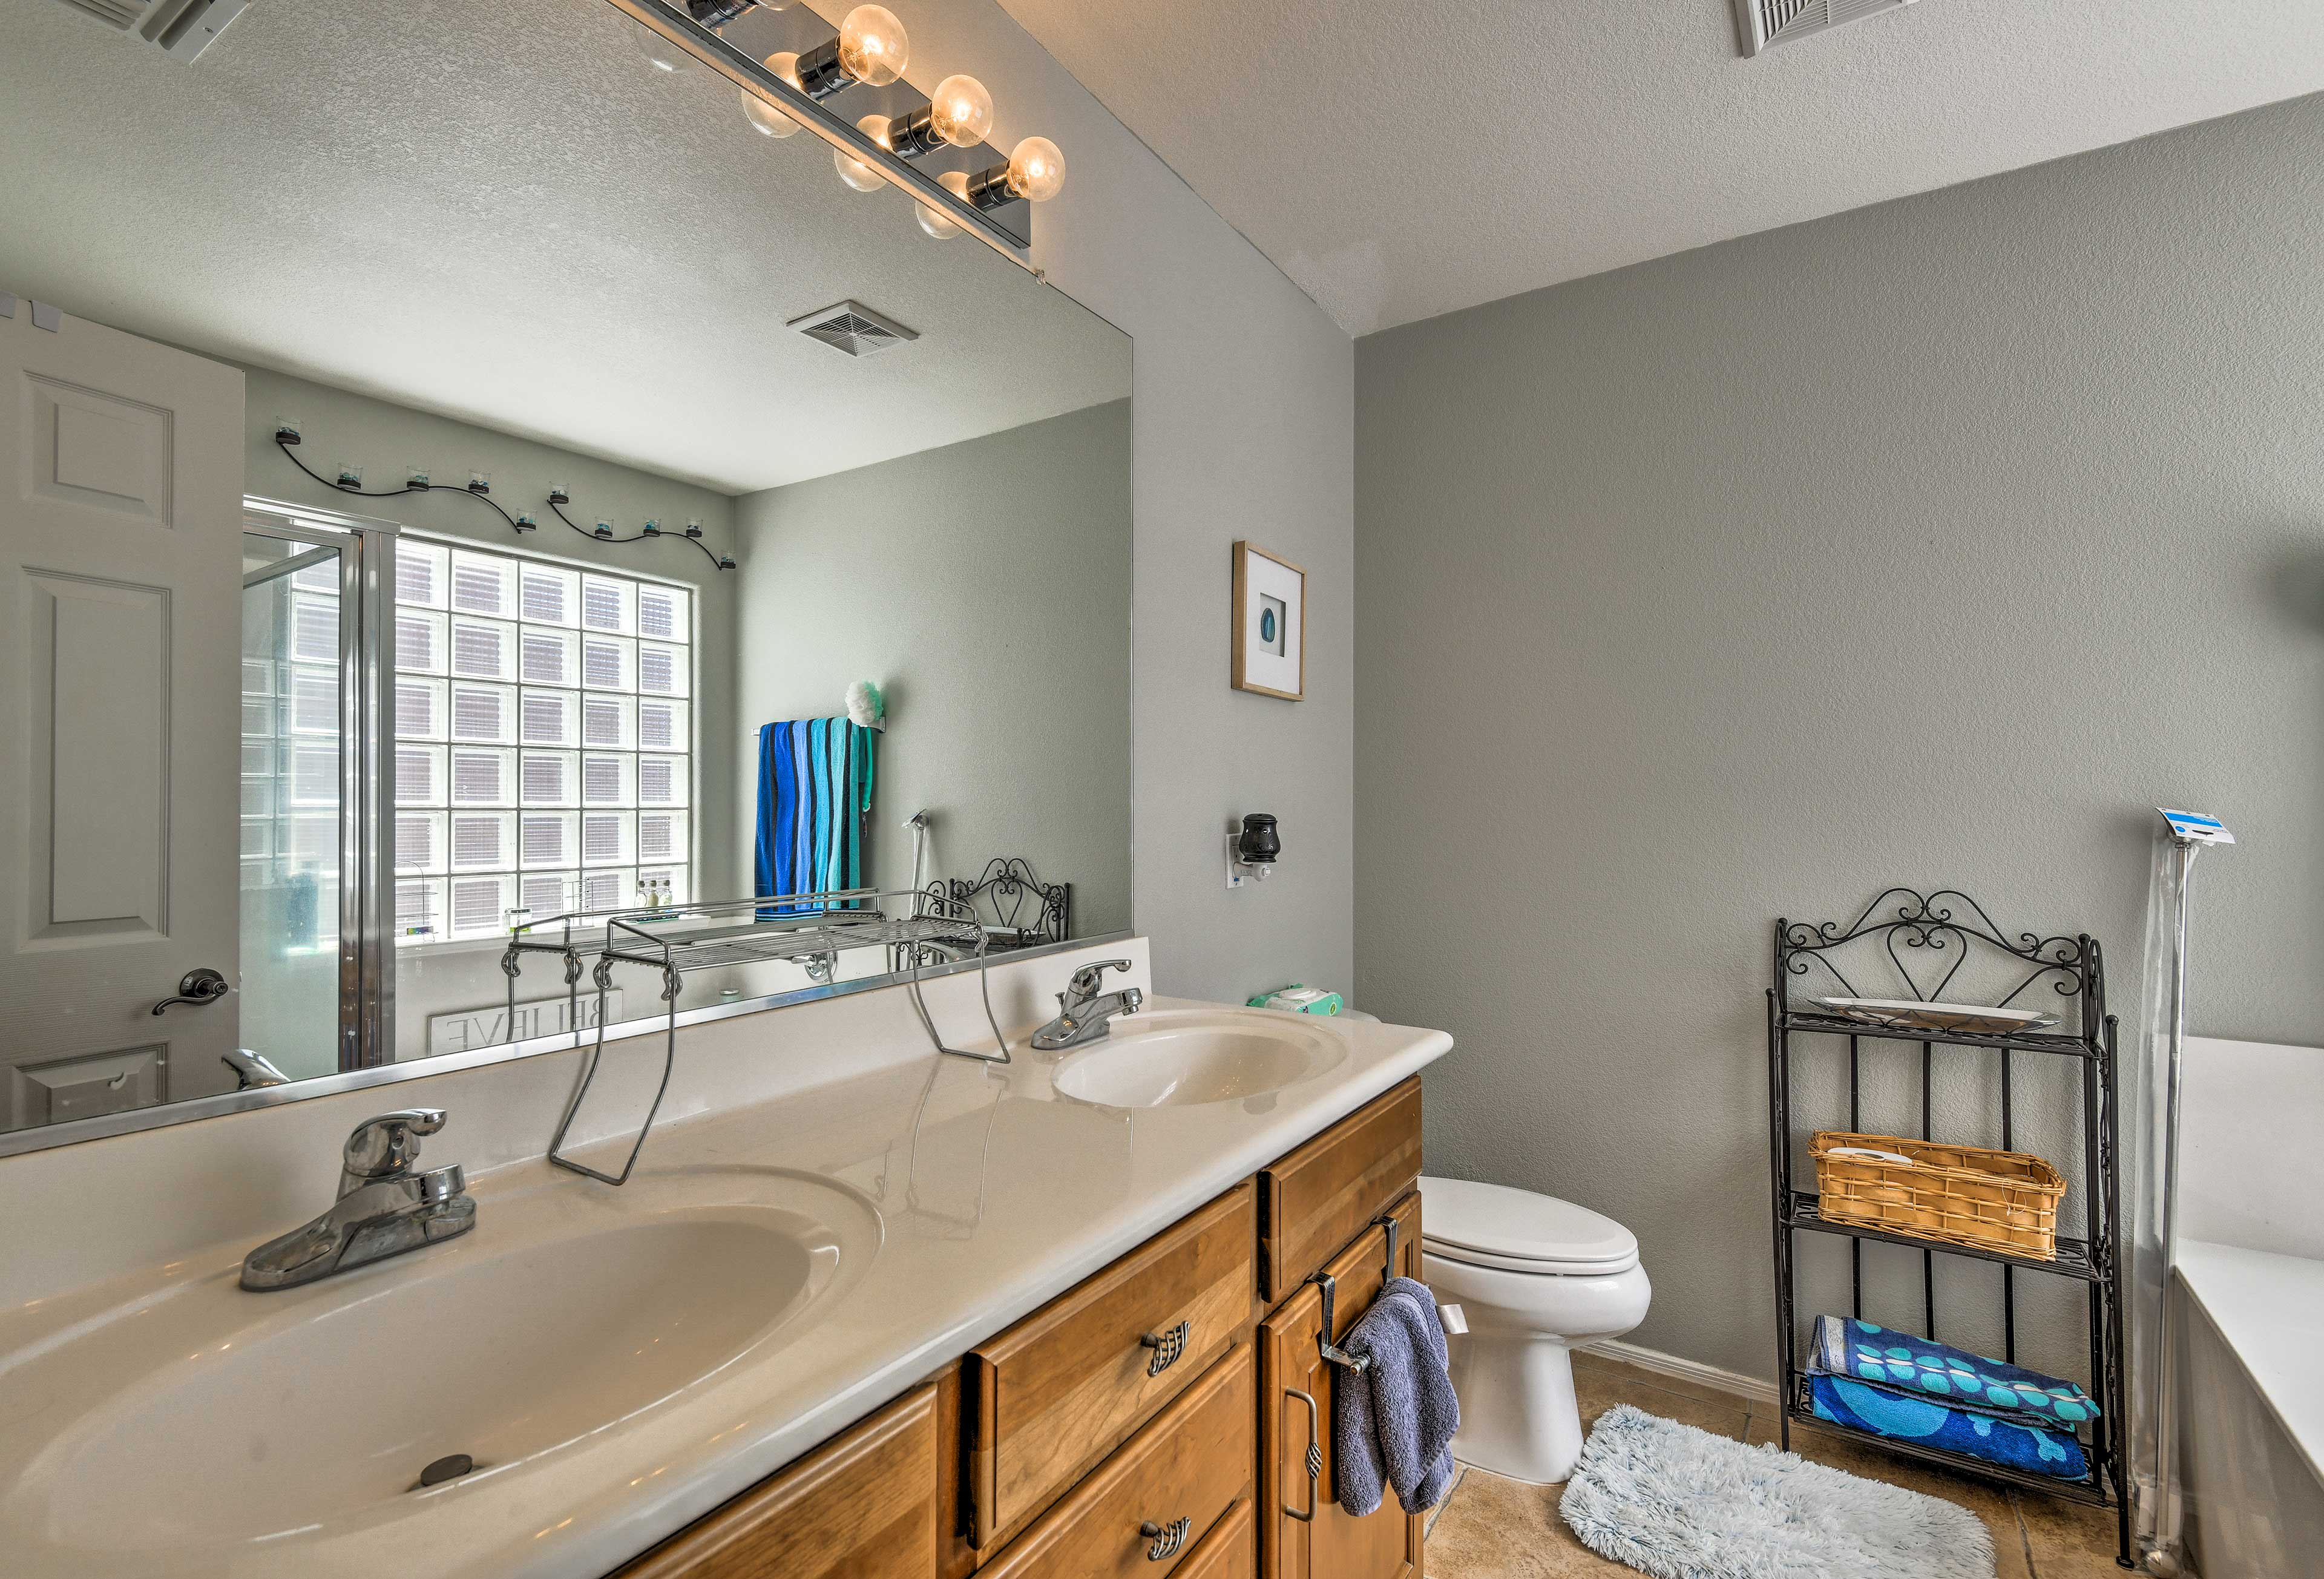 The master bedroom offers an en-suite bathroom with a double sink vanity!